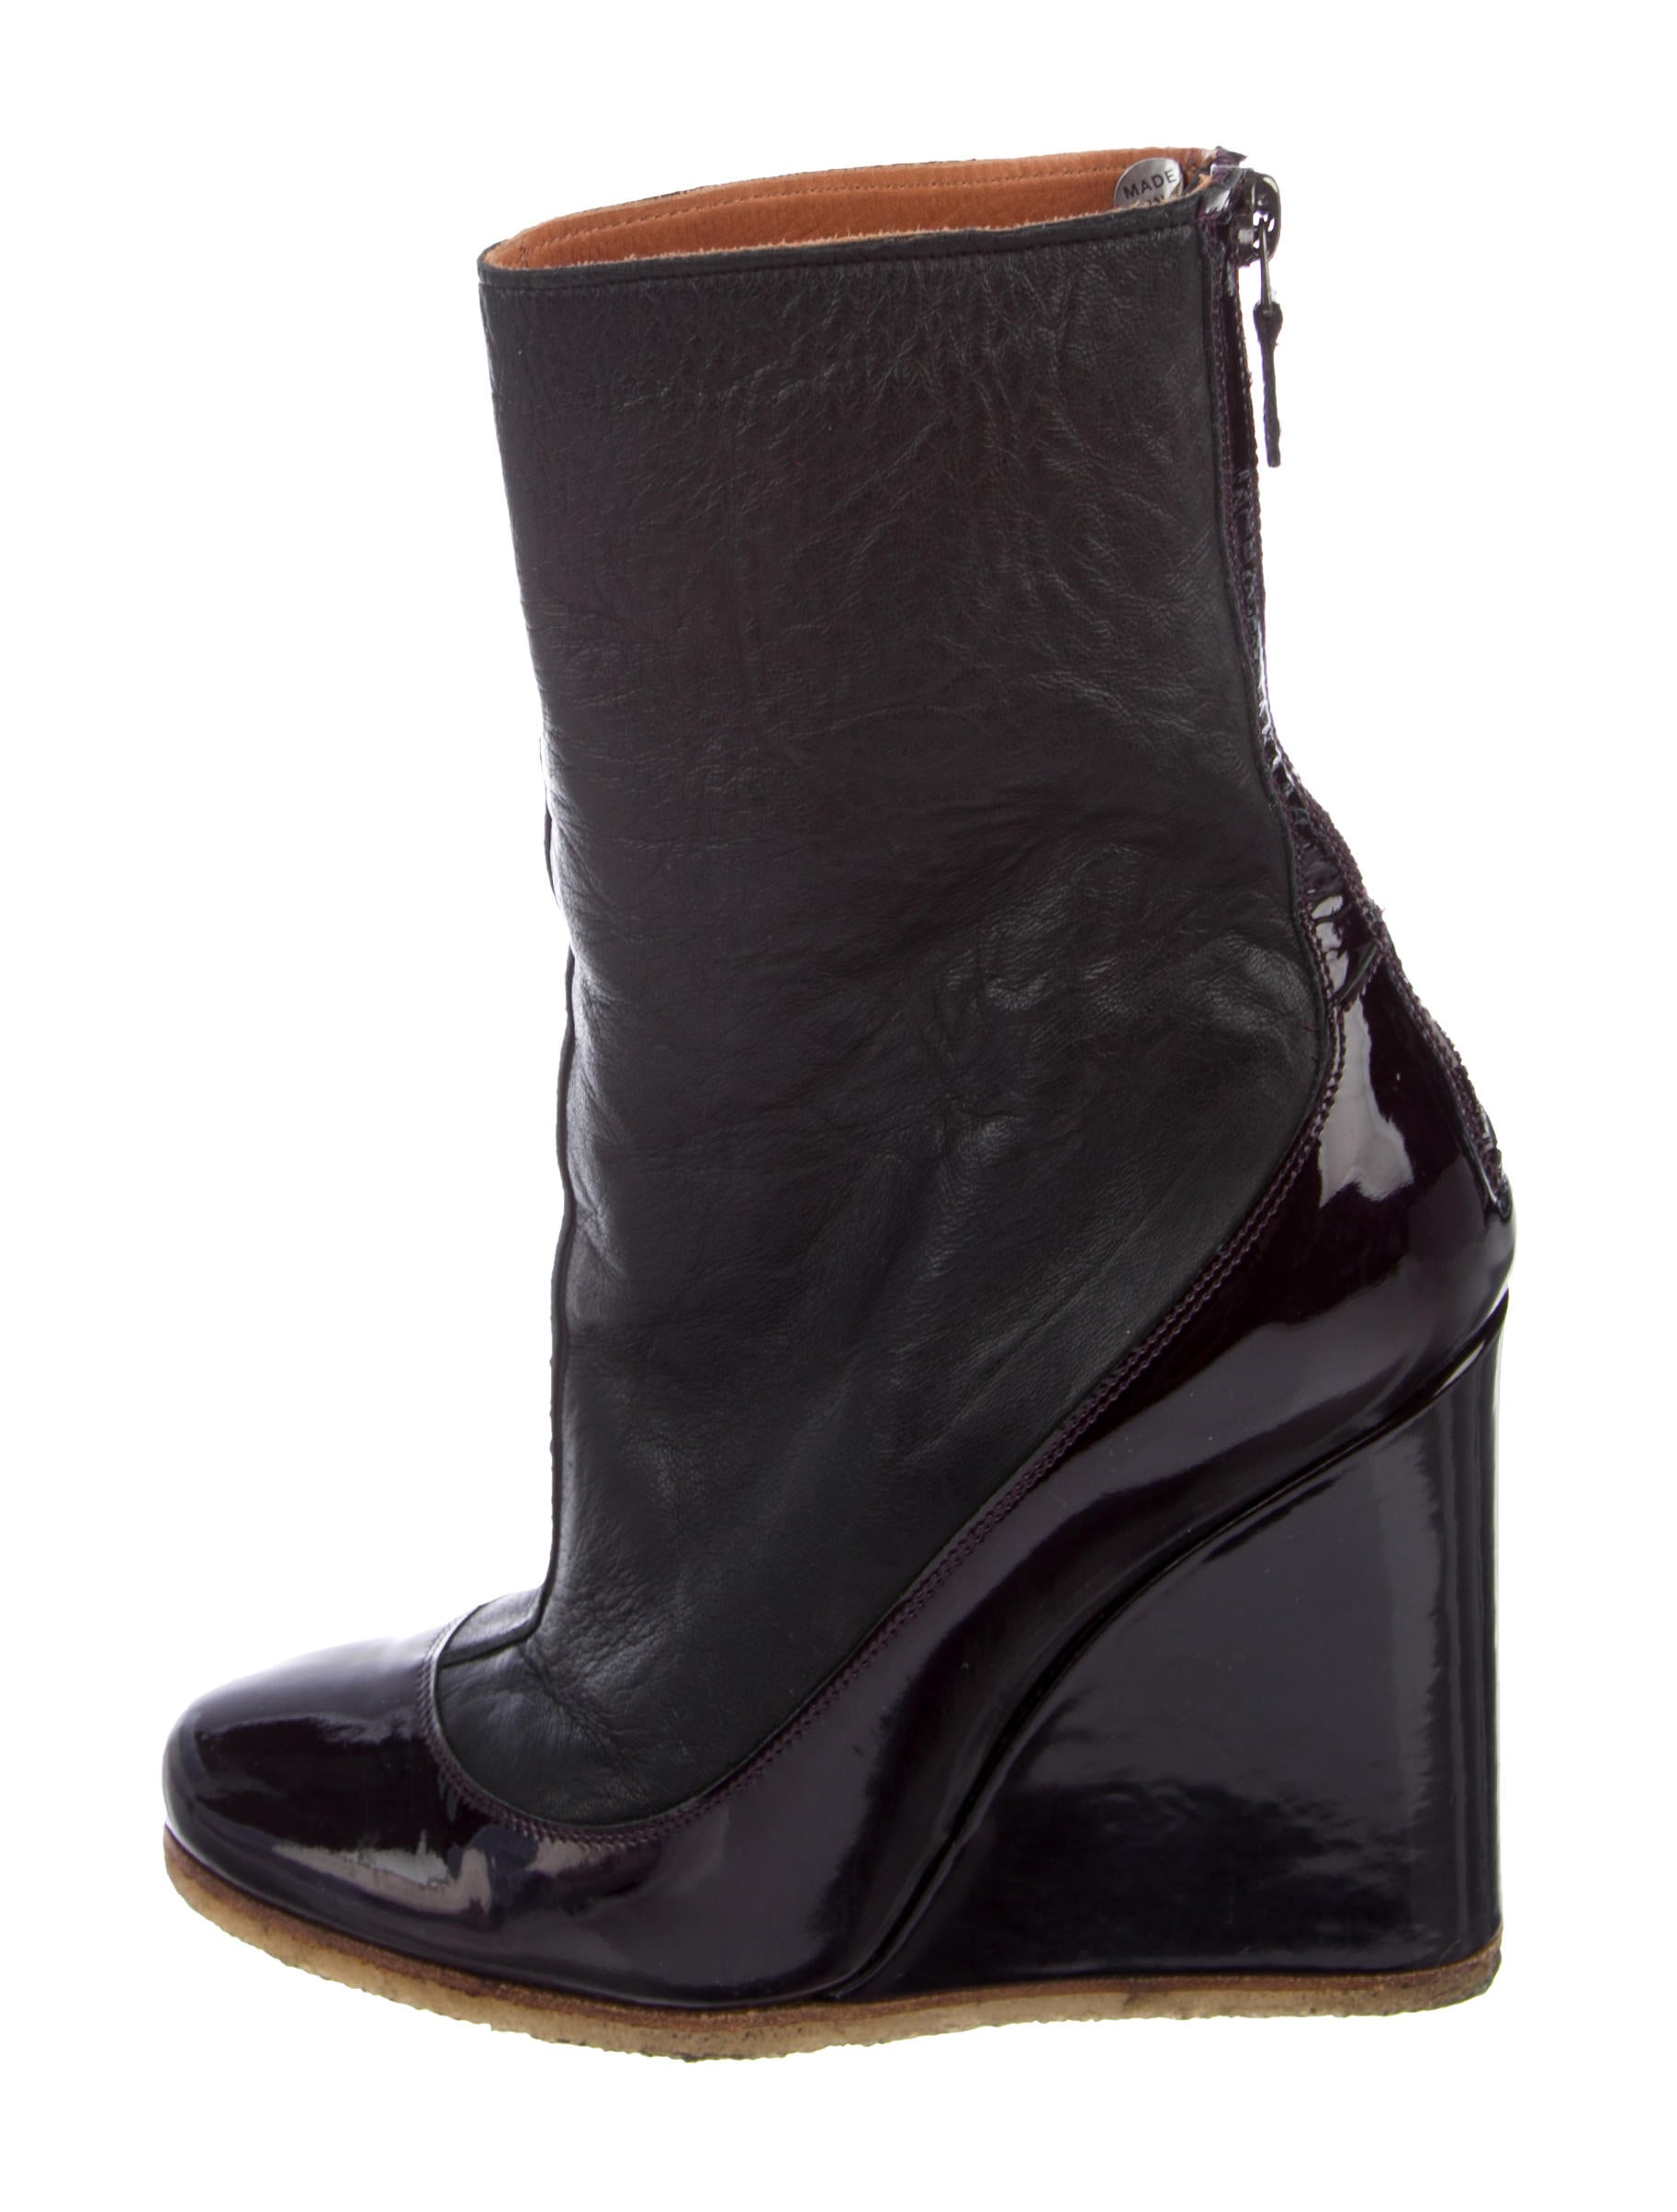 tumblr cheap price Lanvin Mid-Calf Wedge Boots cheap sale big sale cheap sale brand new unisex cost cheap price footlocker finishline online iQJFeQ